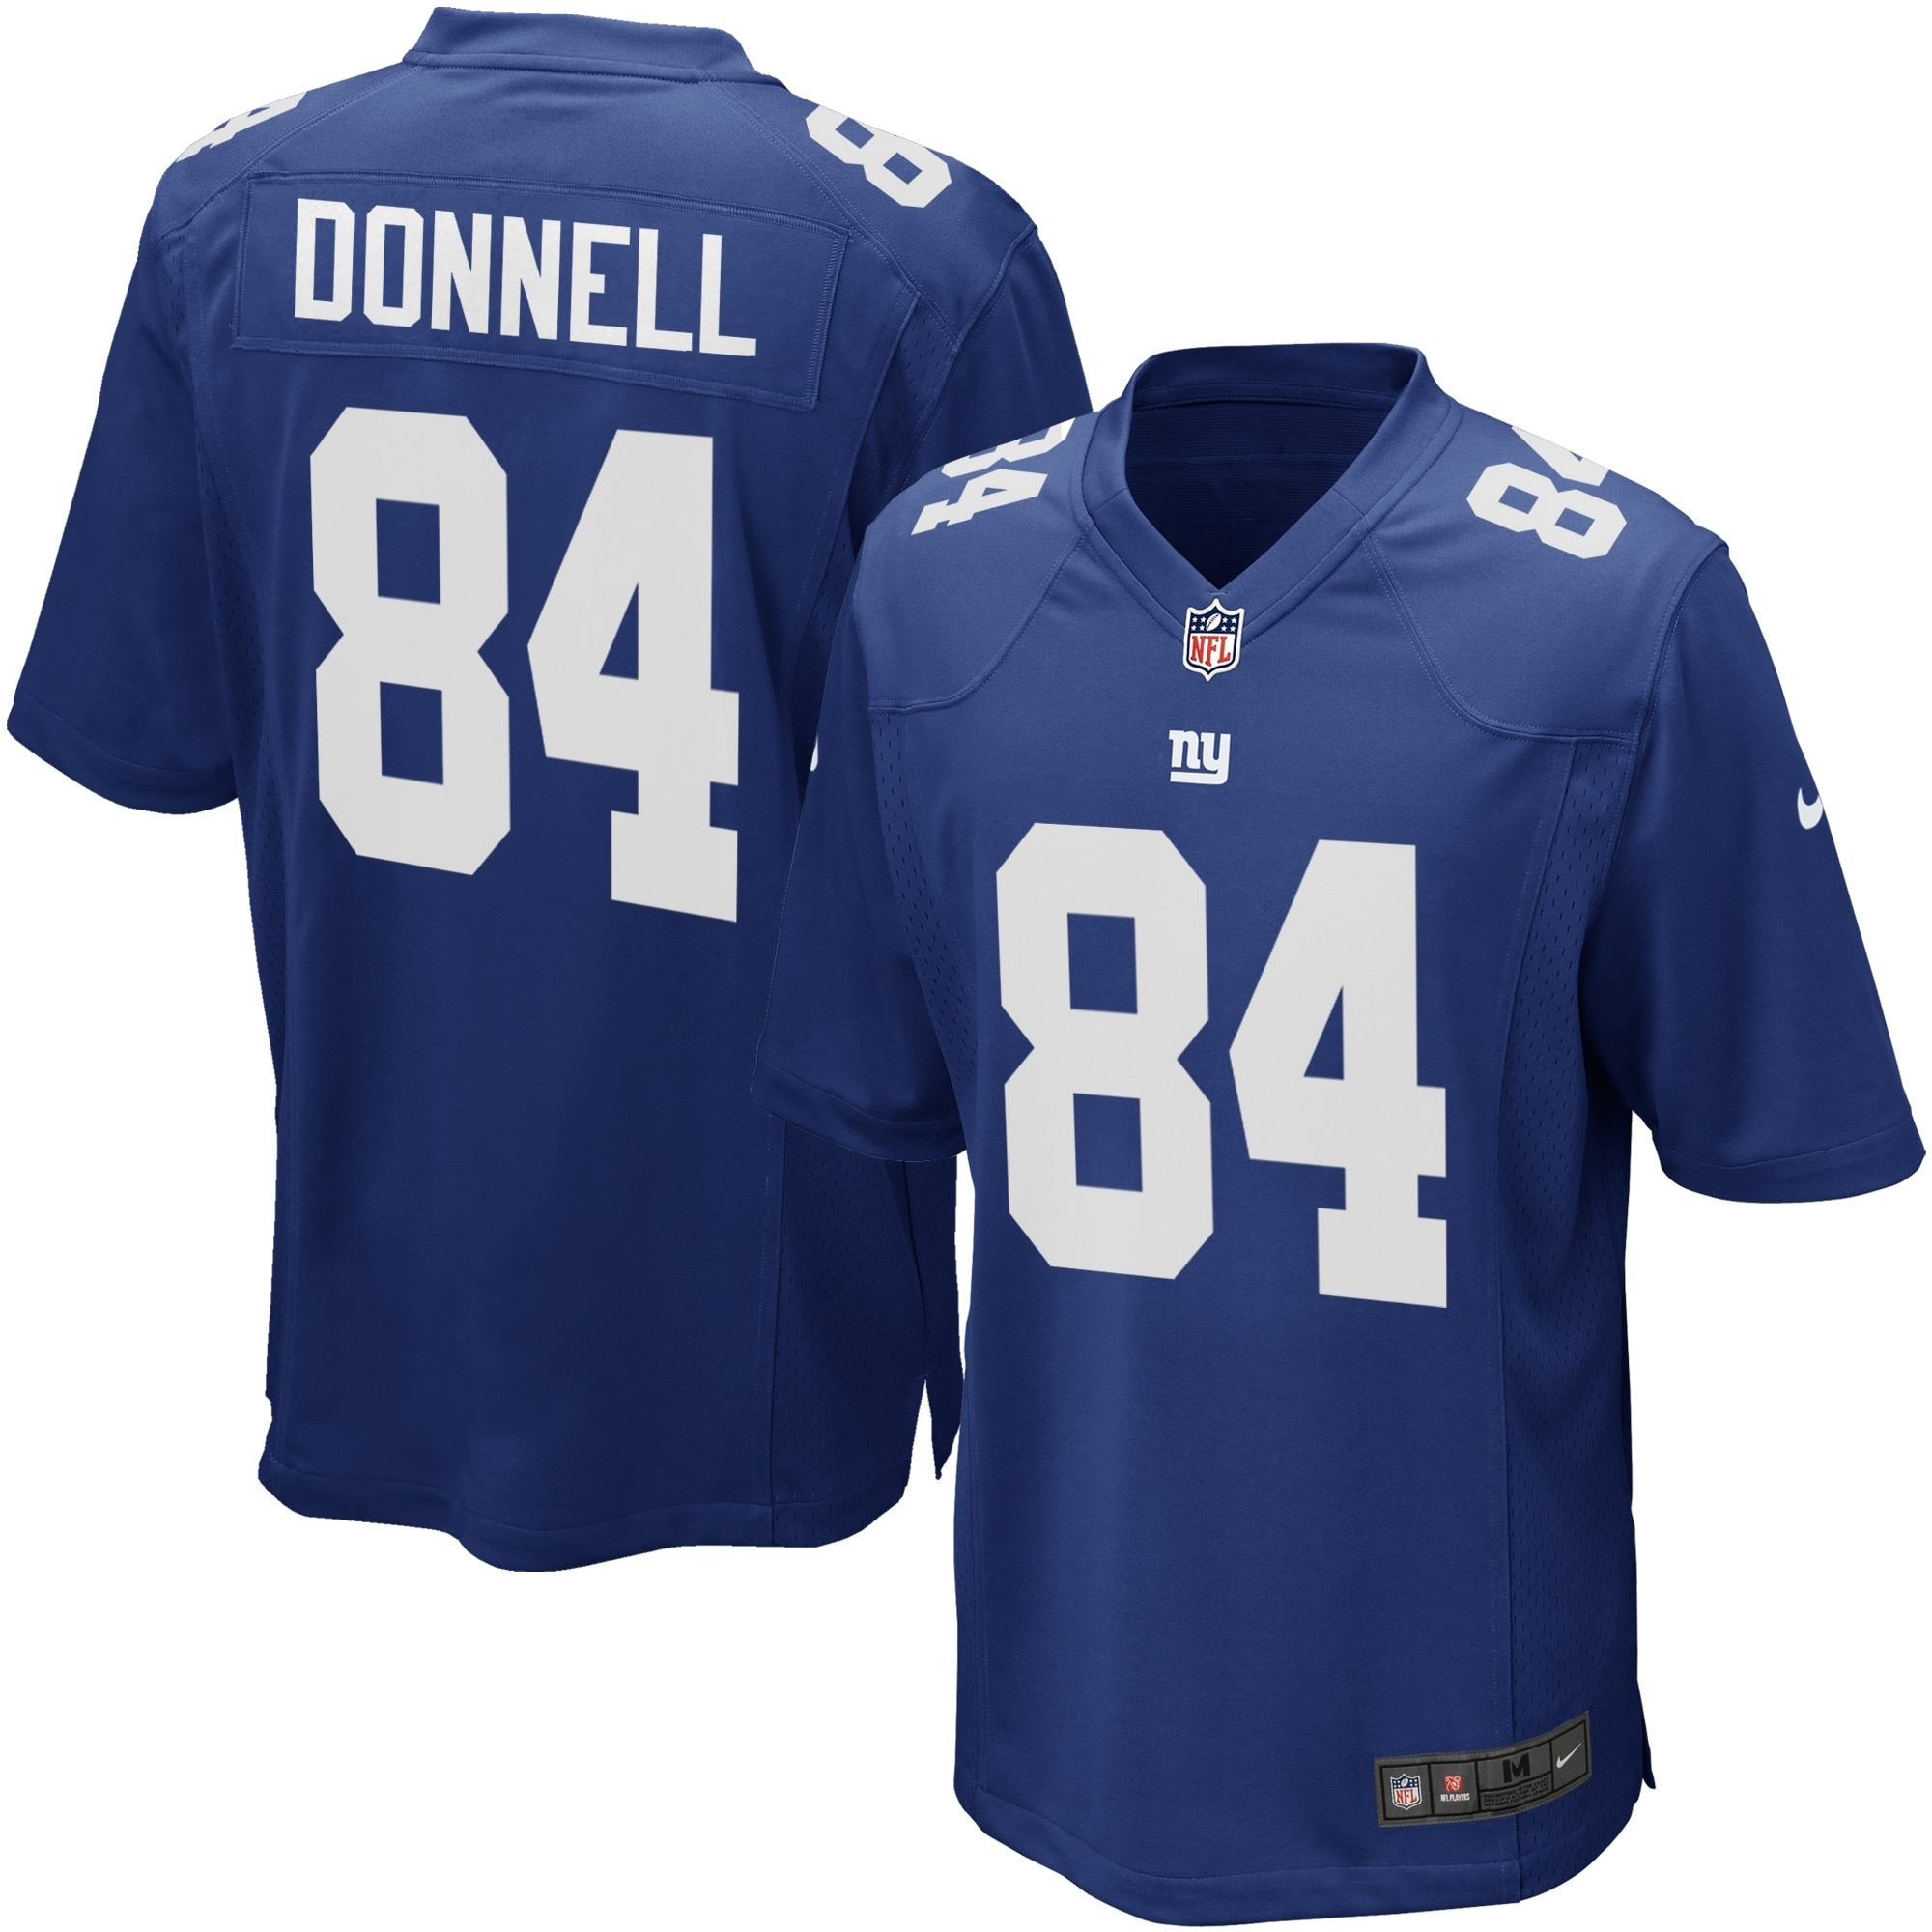 Larry Donnell New York Giants Youth Nike Team Color Game Jersey - Royal Blue